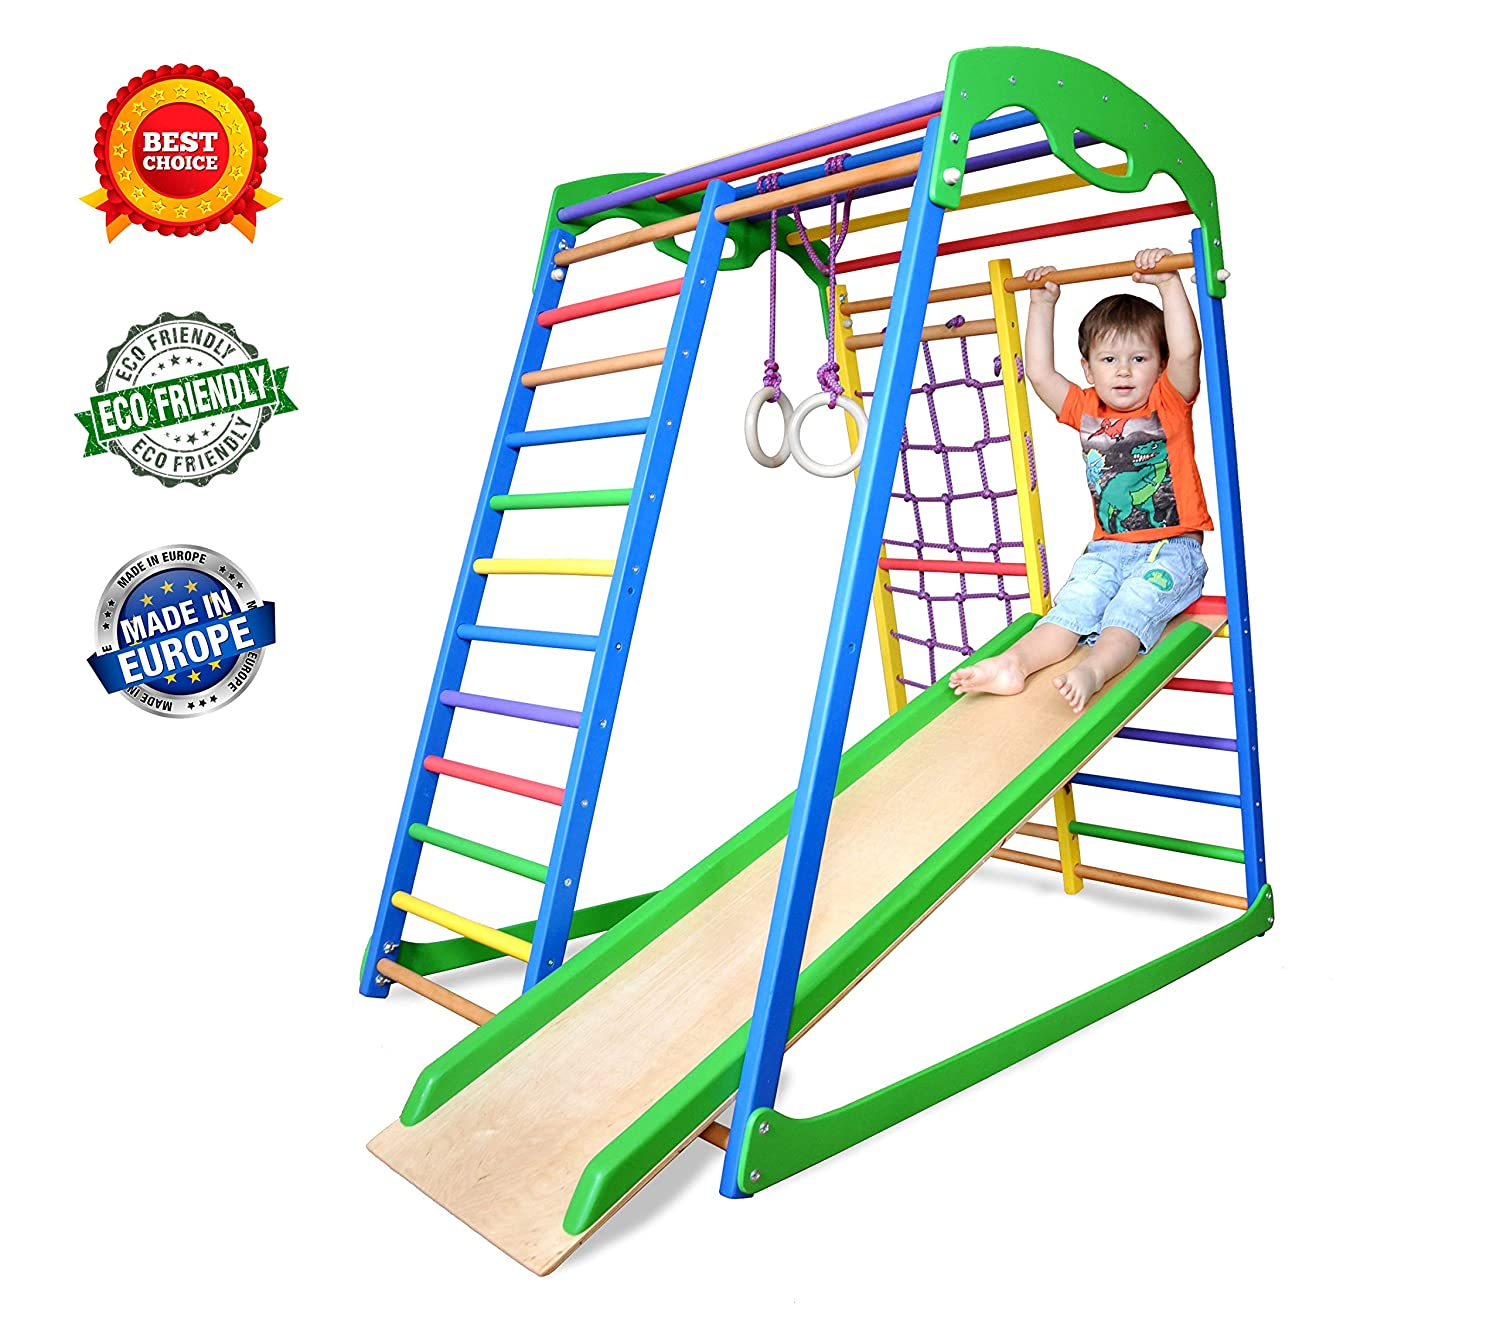 Indoor Playground  Jungle Gym  Monkey Bars  Gymnastics Rings  Backyard Playsets for Kids  Playset for Toddlers  Toddler Climber  SportWood